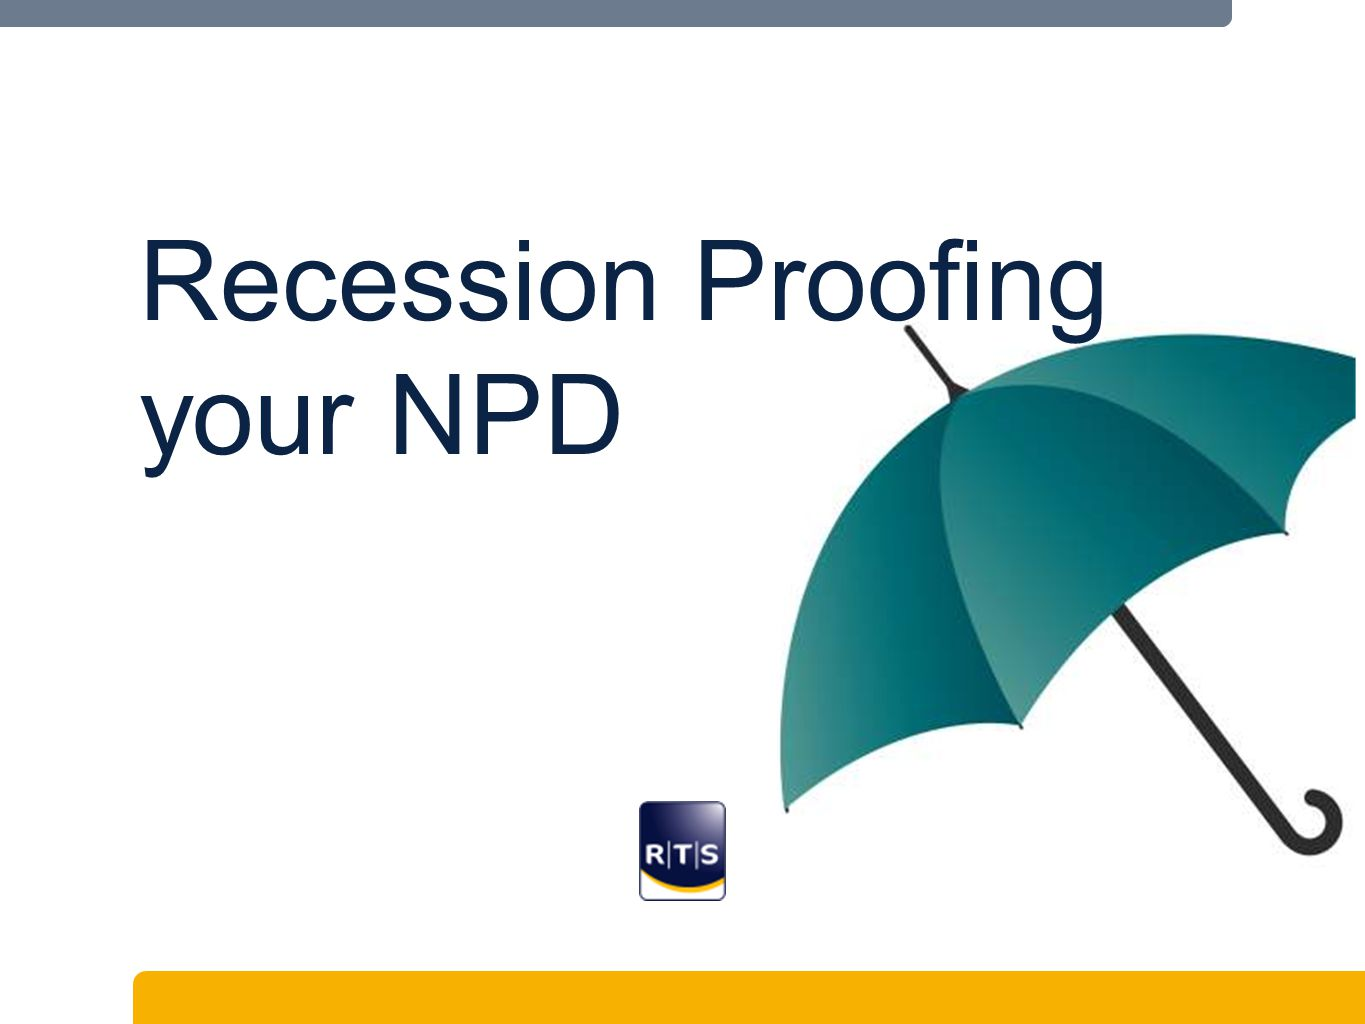 Recession Proofing your NPD